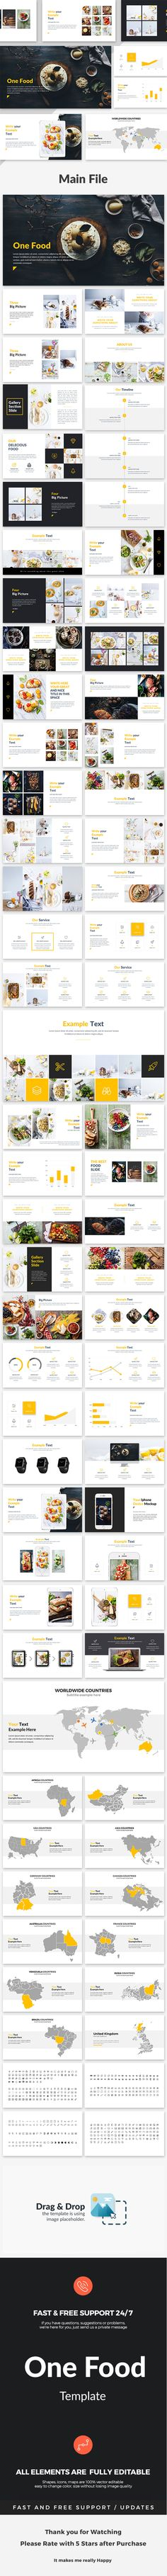 One Food  Creative Google Slide Template — Google Slides PPTX #industrial #info graphics • Download ➝ https://graphicriver.net/item/one-food-creative-google-slide-template/18928069?ref=pxcr